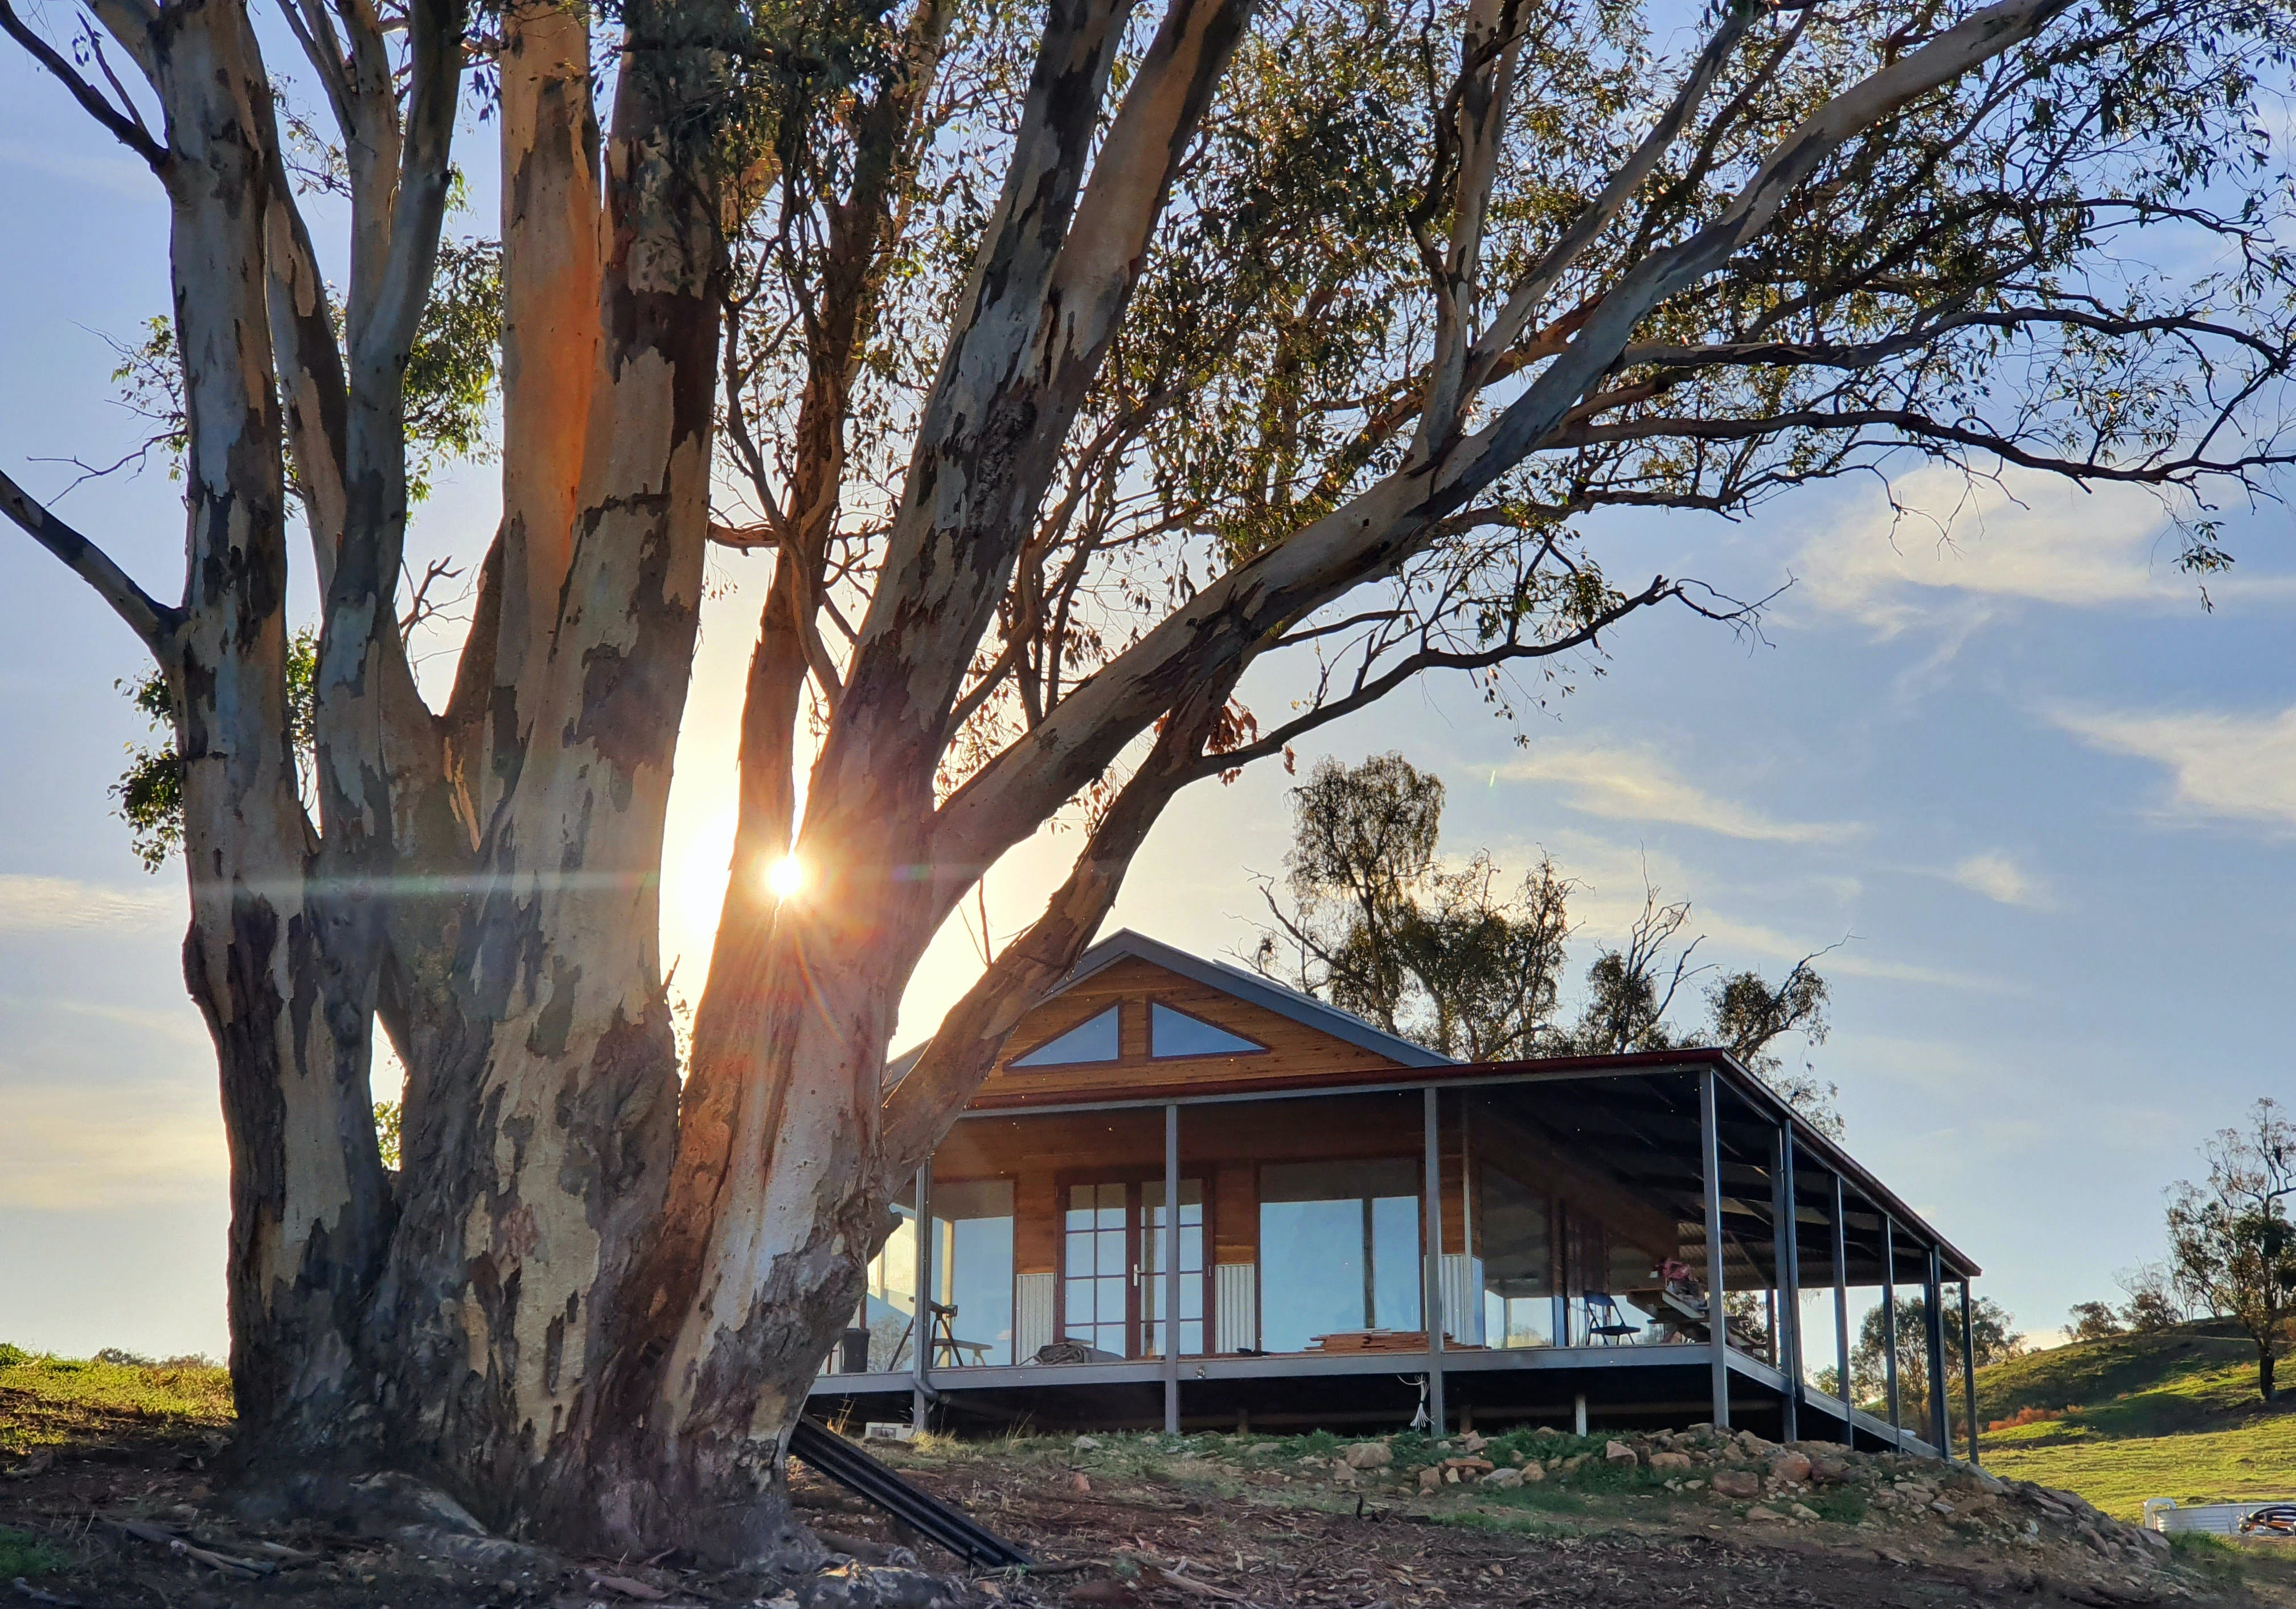 Kestrel Nest EcoHut - Accommodation Adelaide